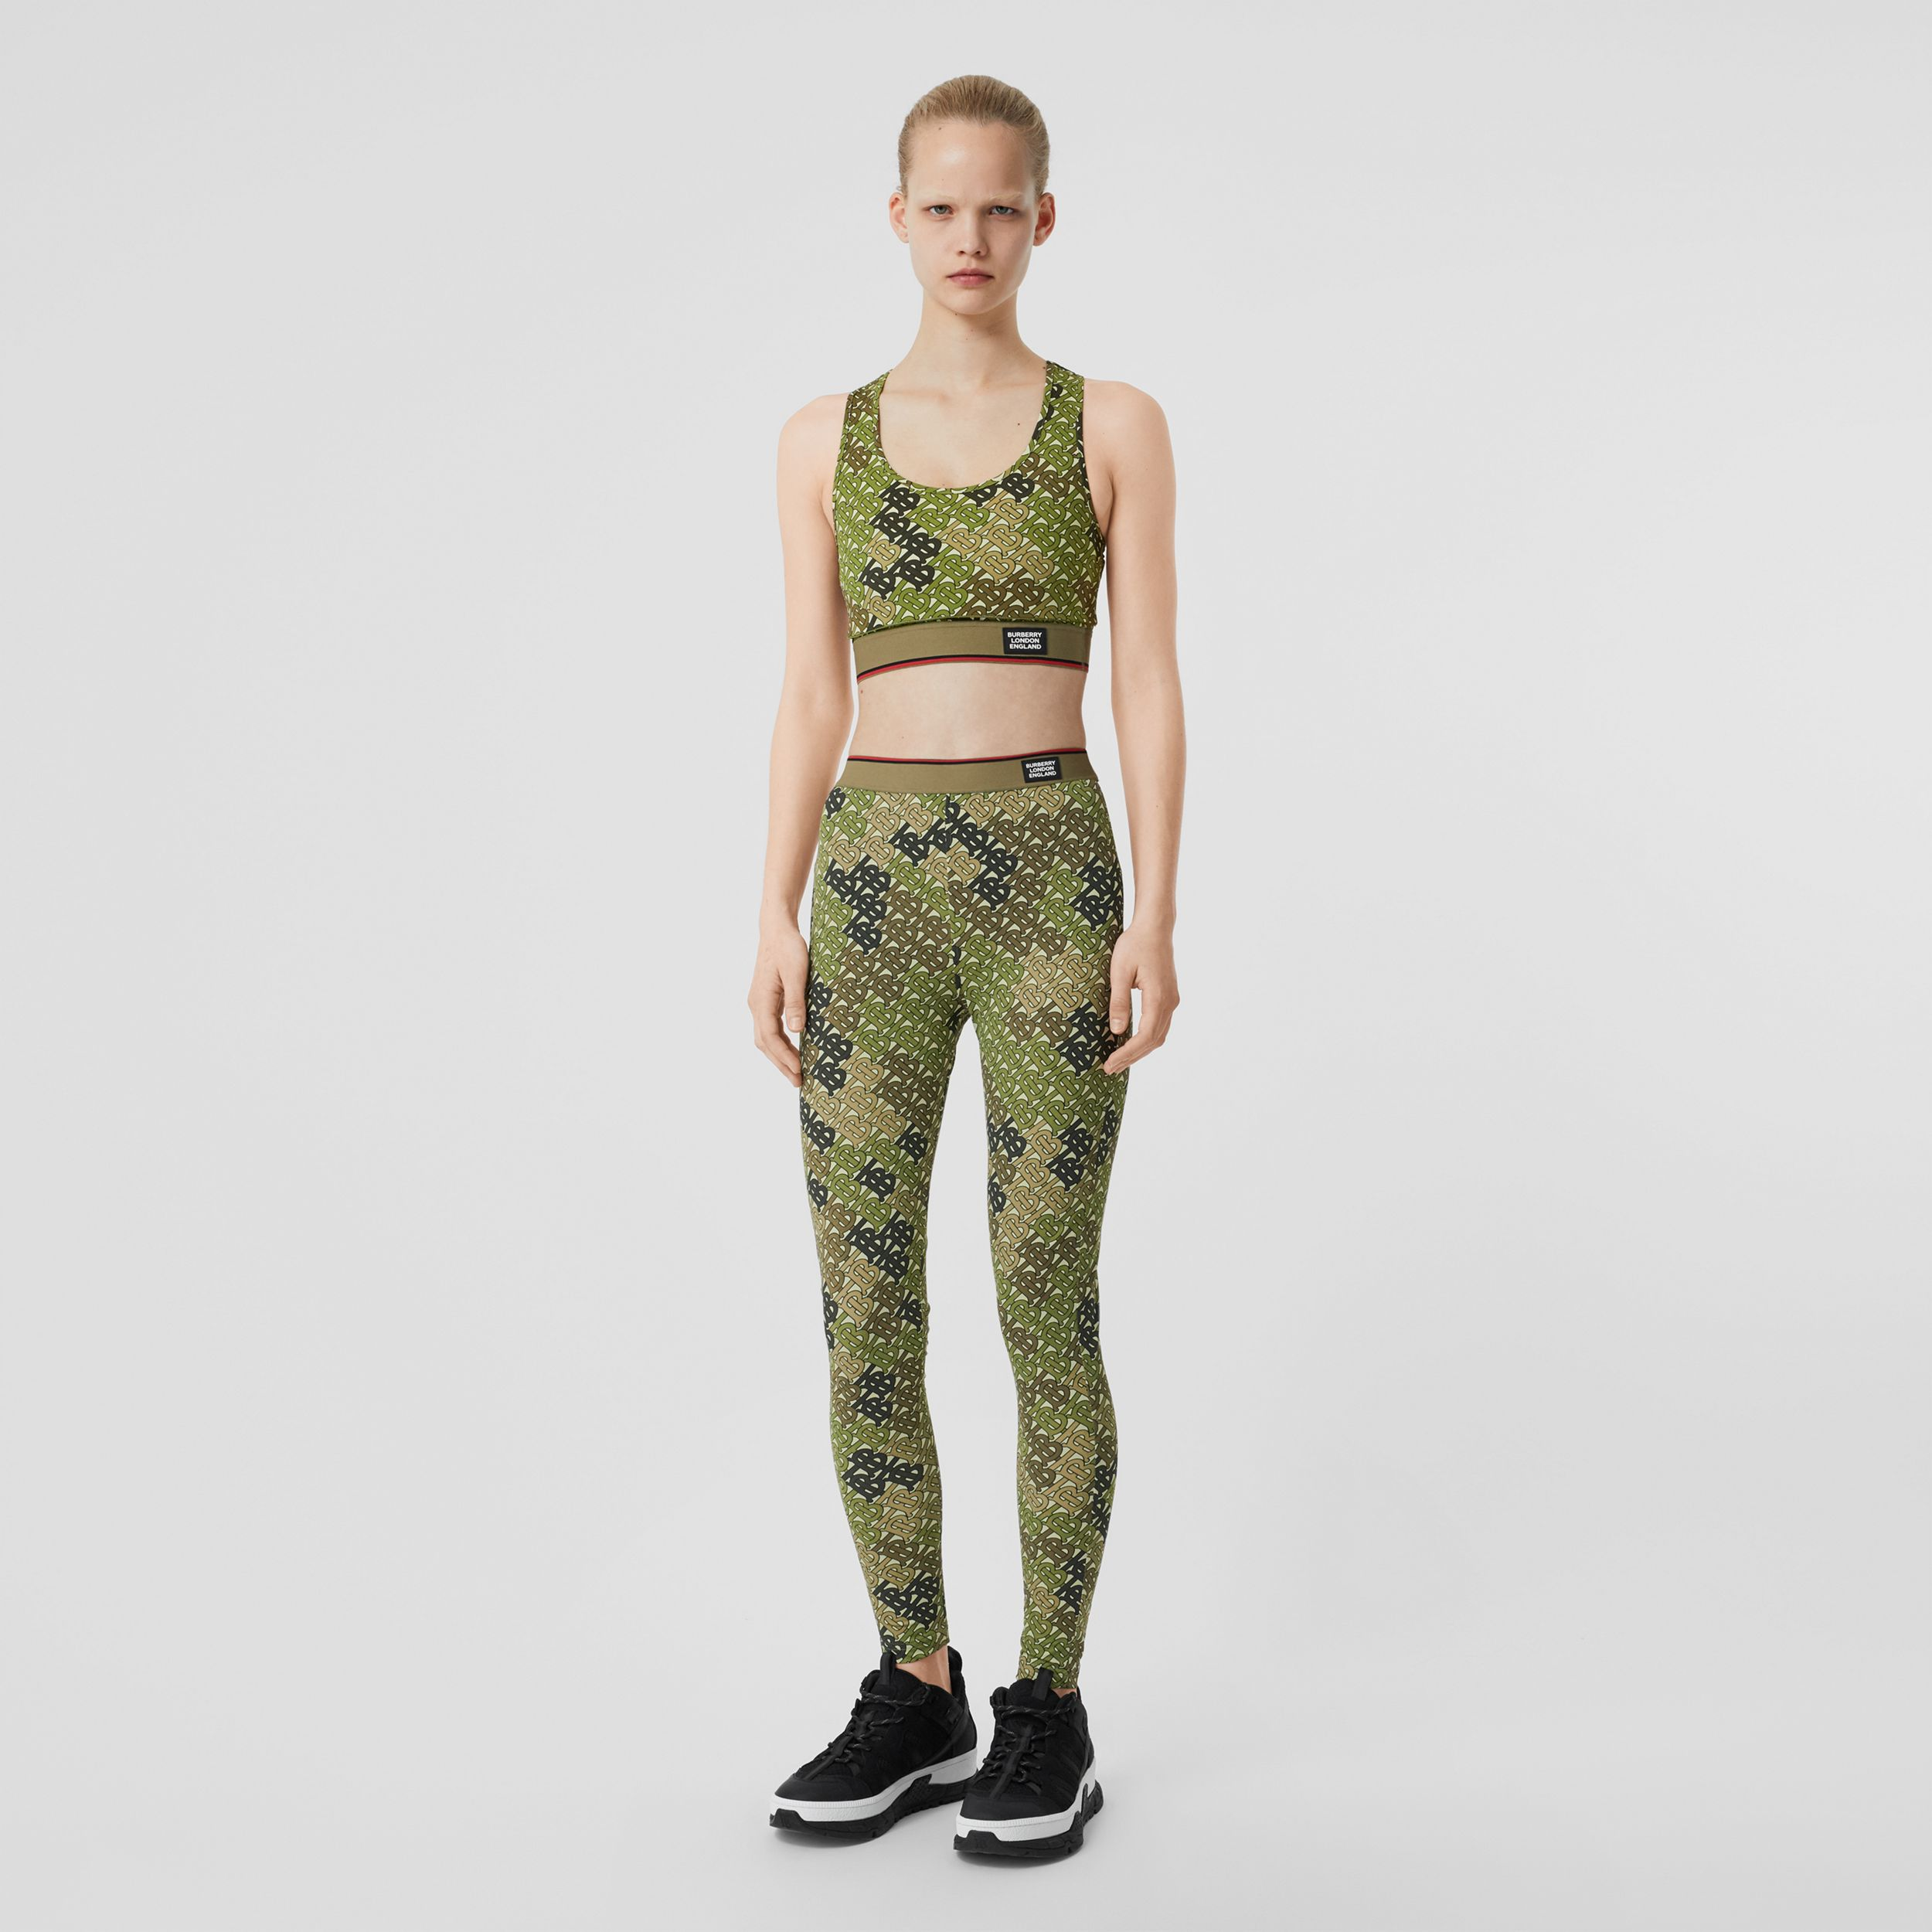 Monogram Print Stretch Jersey Leggings in Khaki Green - Women | Burberry - 1